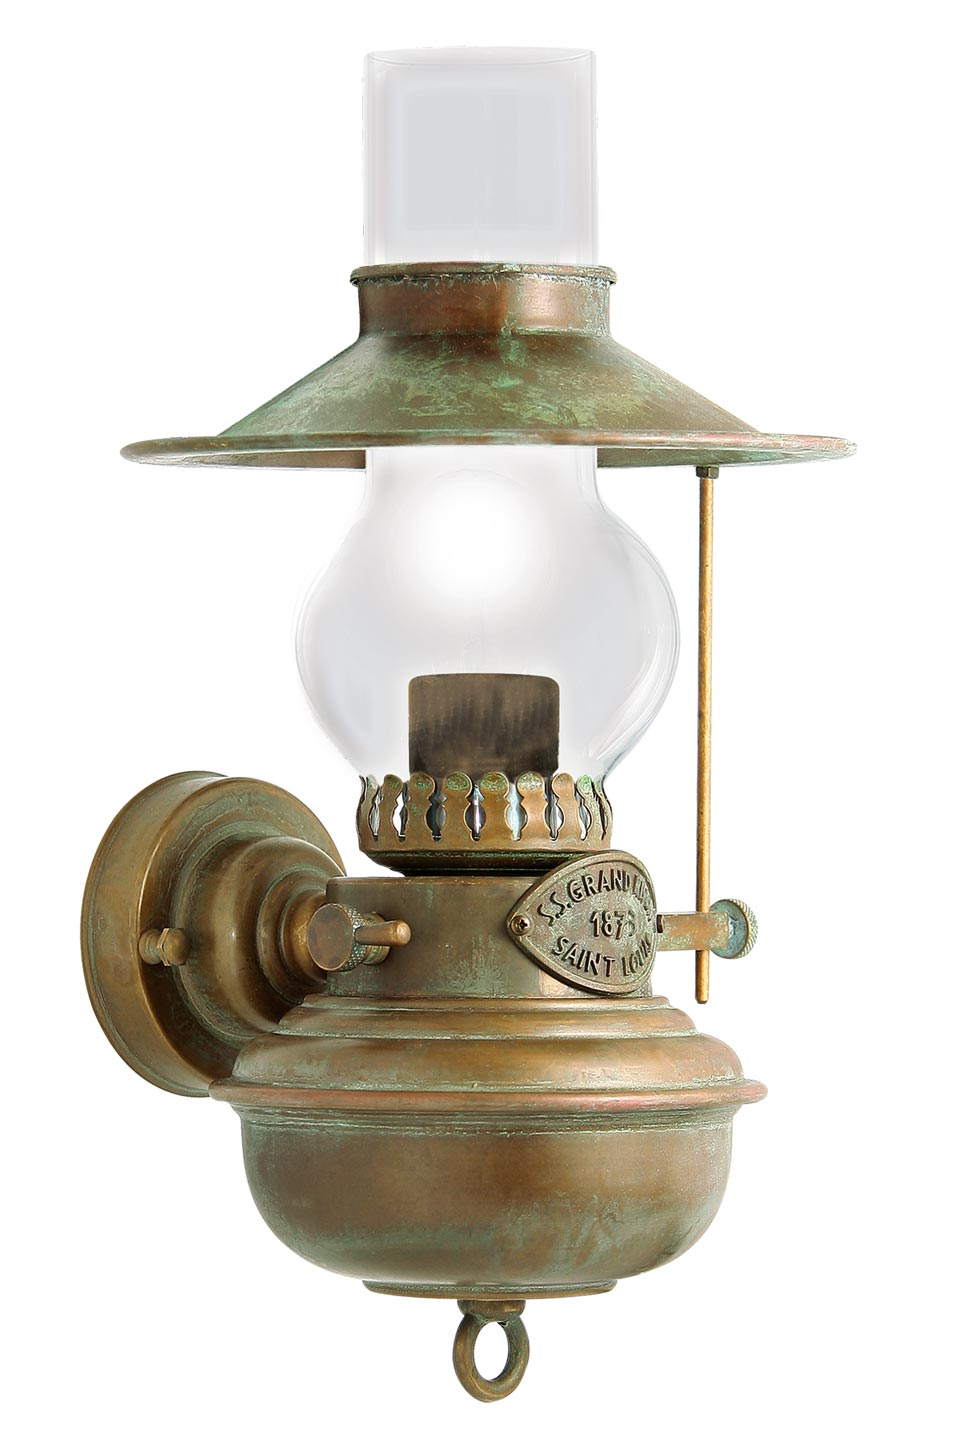 Patina brass oil lamp wall light. Moretti Luce.